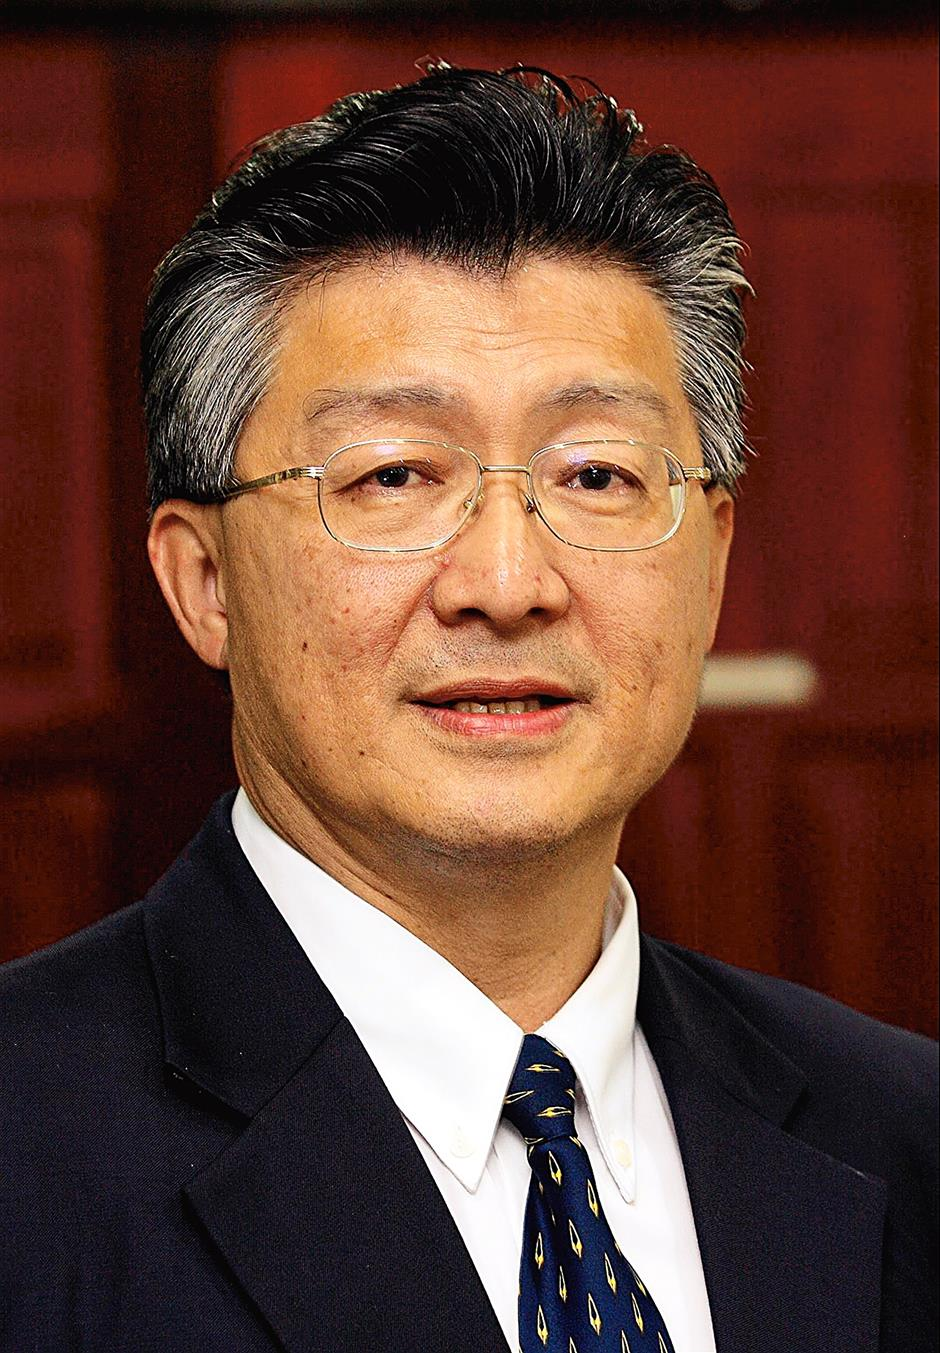 Chang Kim Loong is the honorary secretary-general of the National House Buyers Association.He is also a Councillor at MPSJ. He also has a column at Star Publications.